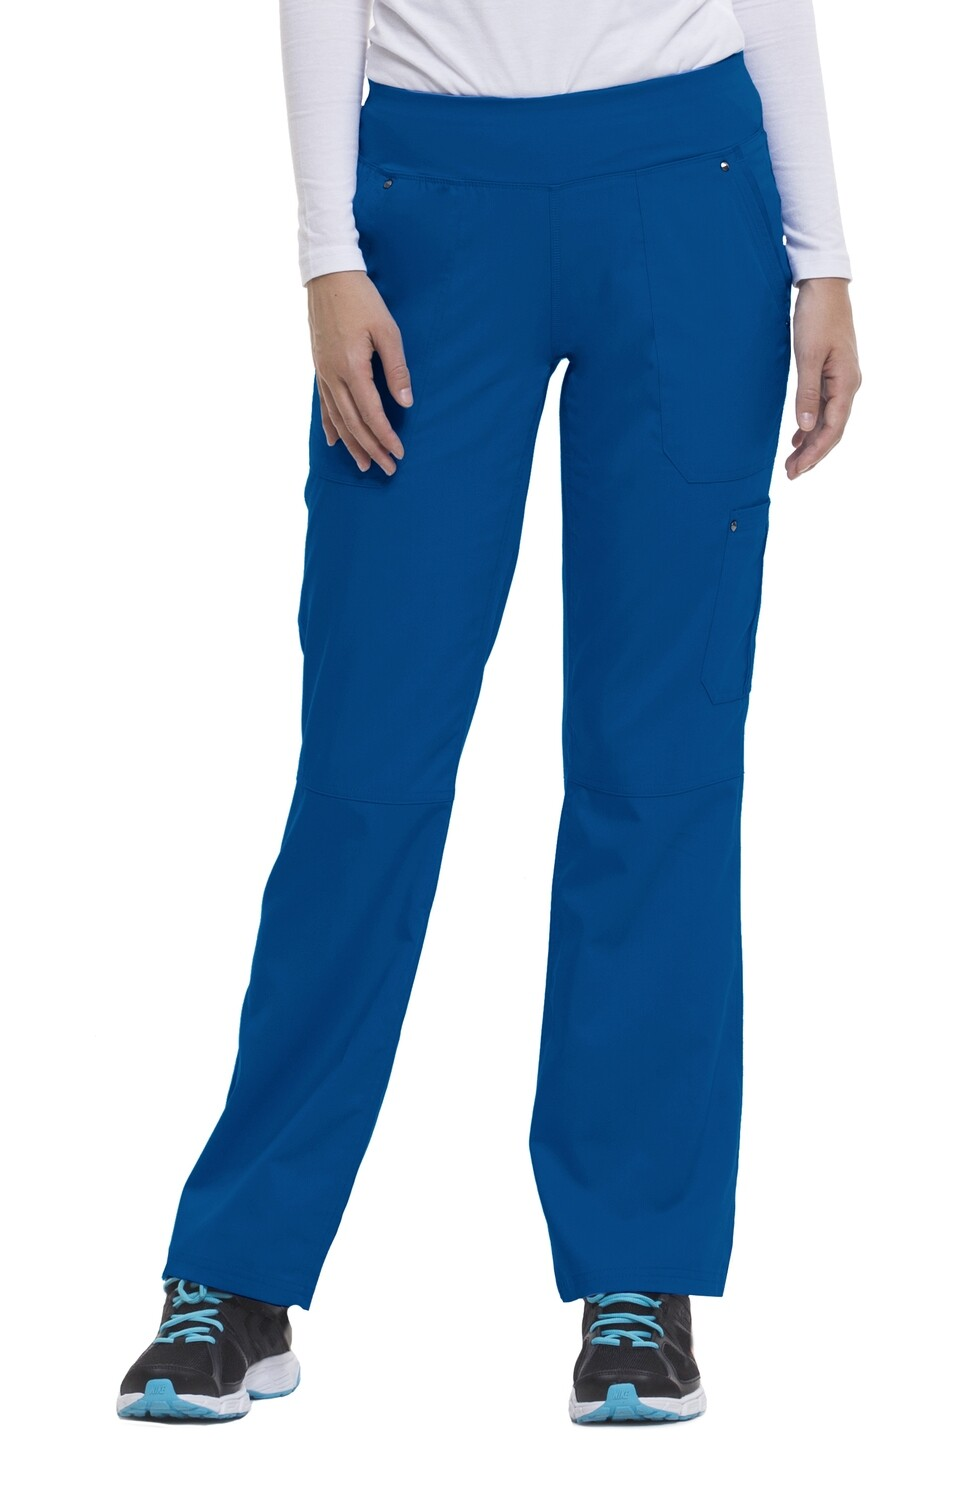 9133 ROYAL TORI PANT  - PL XS ROYAL P